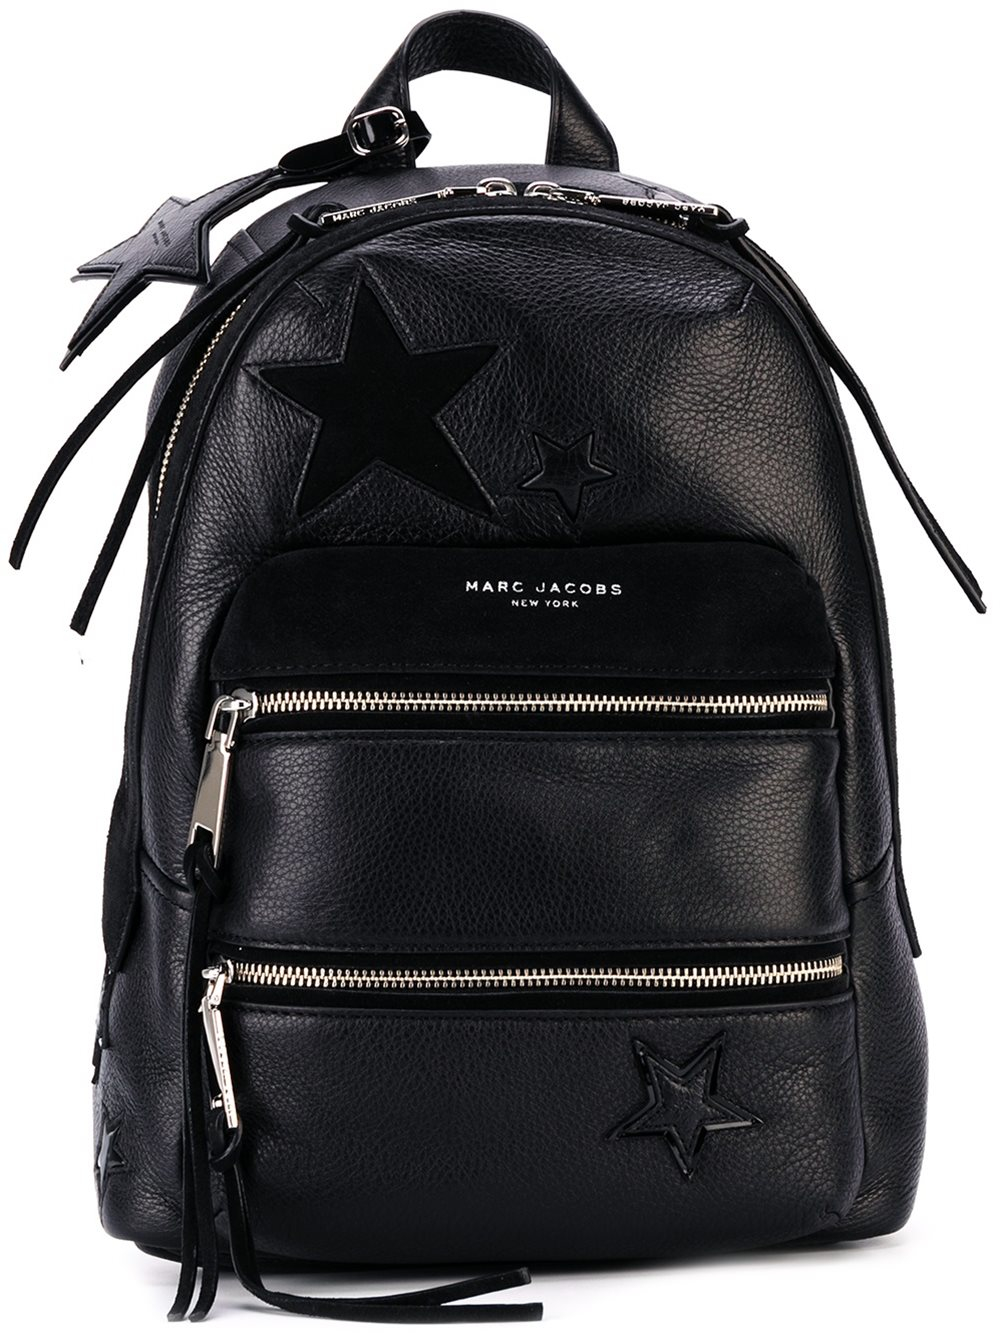 lyst marc jacobs star leather backpack. Black Bedroom Furniture Sets. Home Design Ideas